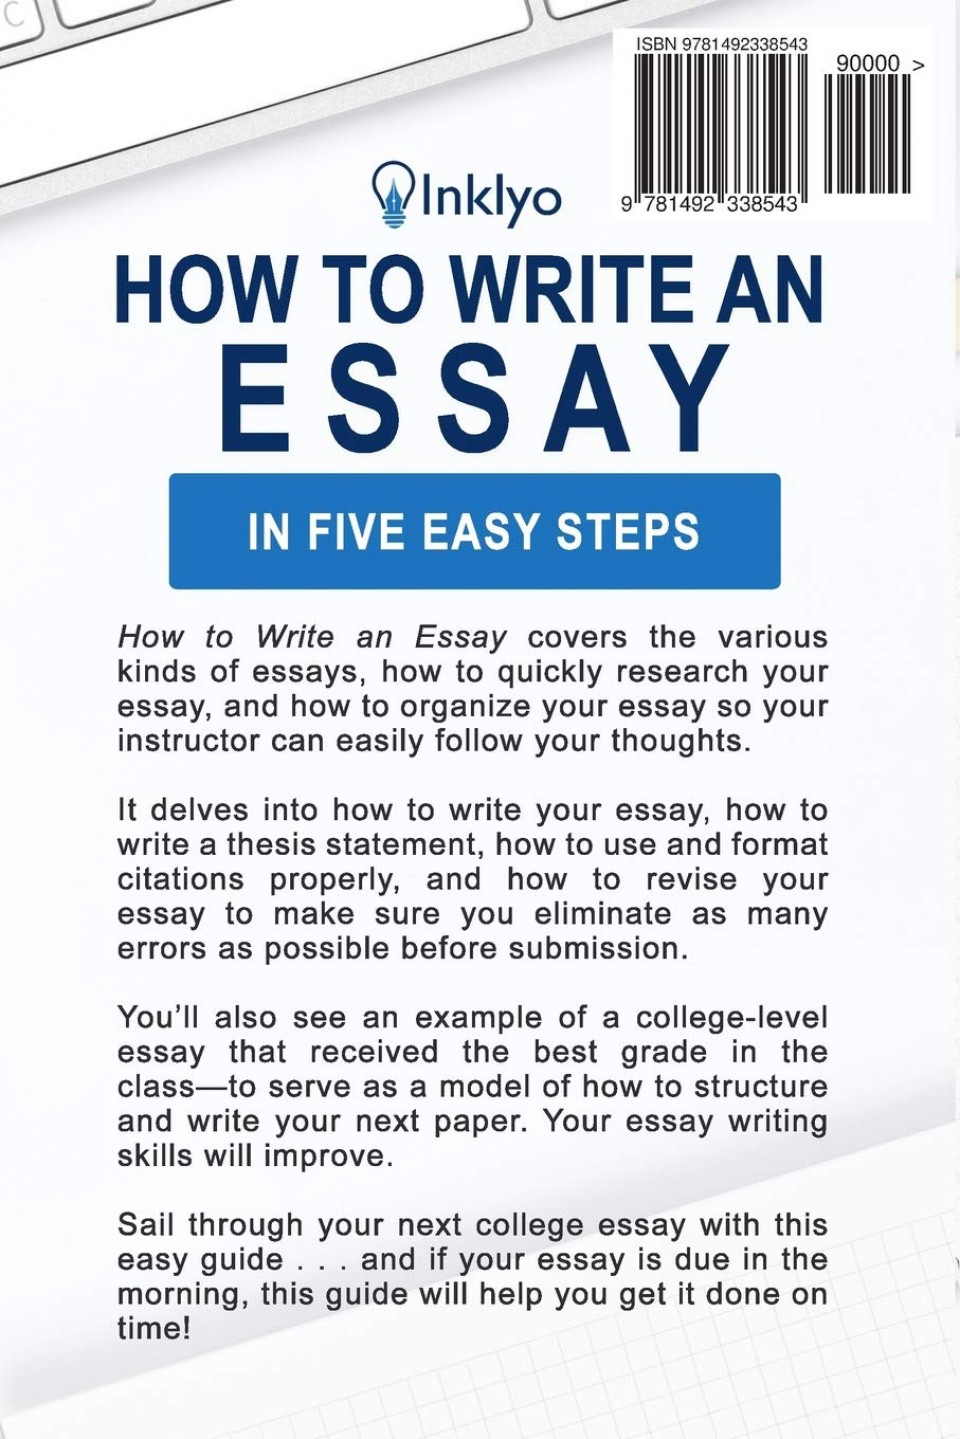 002 How To Write An Essay Example Shocking About Yourself Without Using I For College English Introduction 960